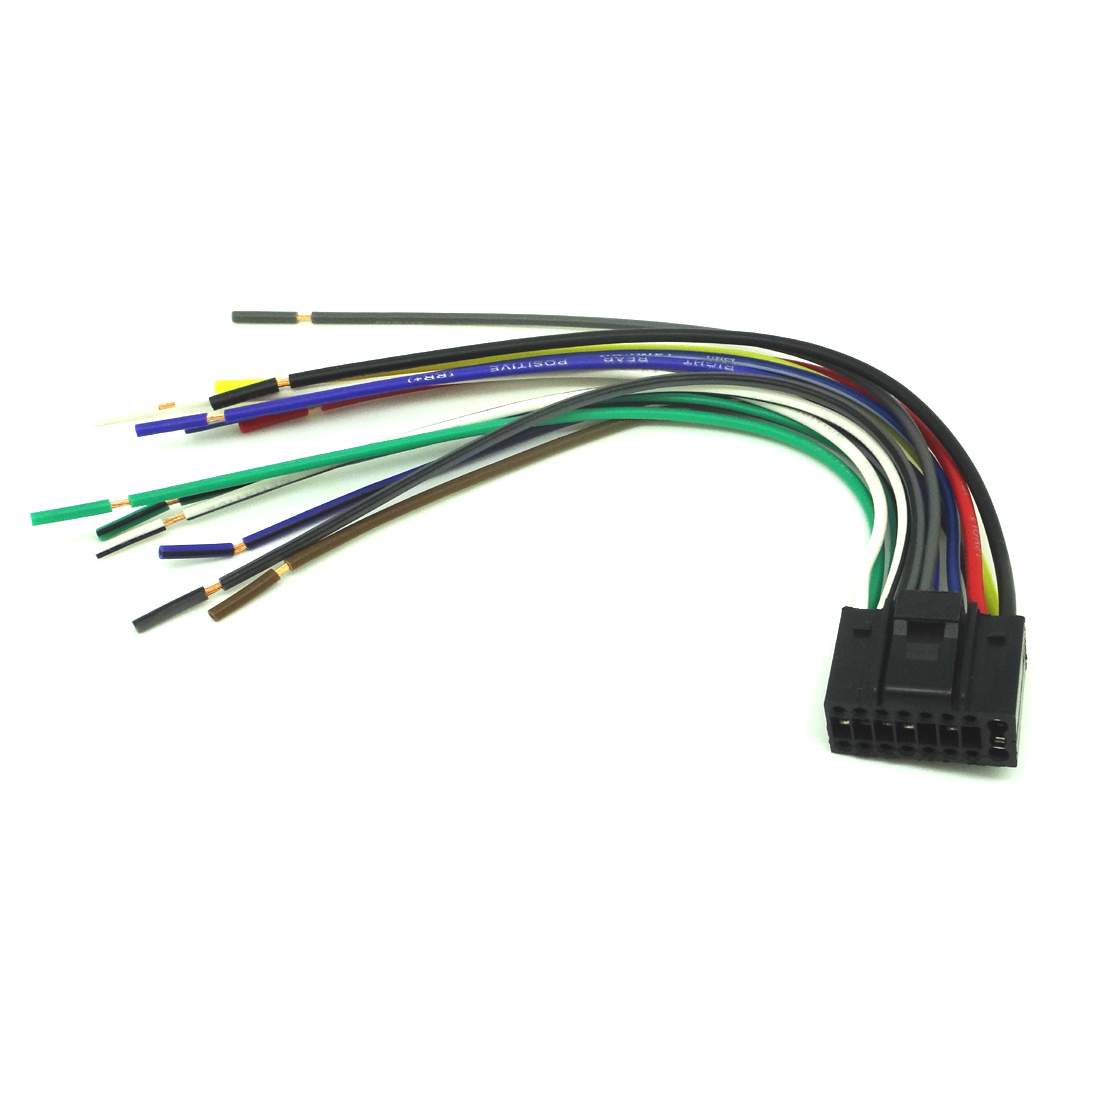 small resolution of player 16 pin radio car audio stereo wire harness for kenwood kdc